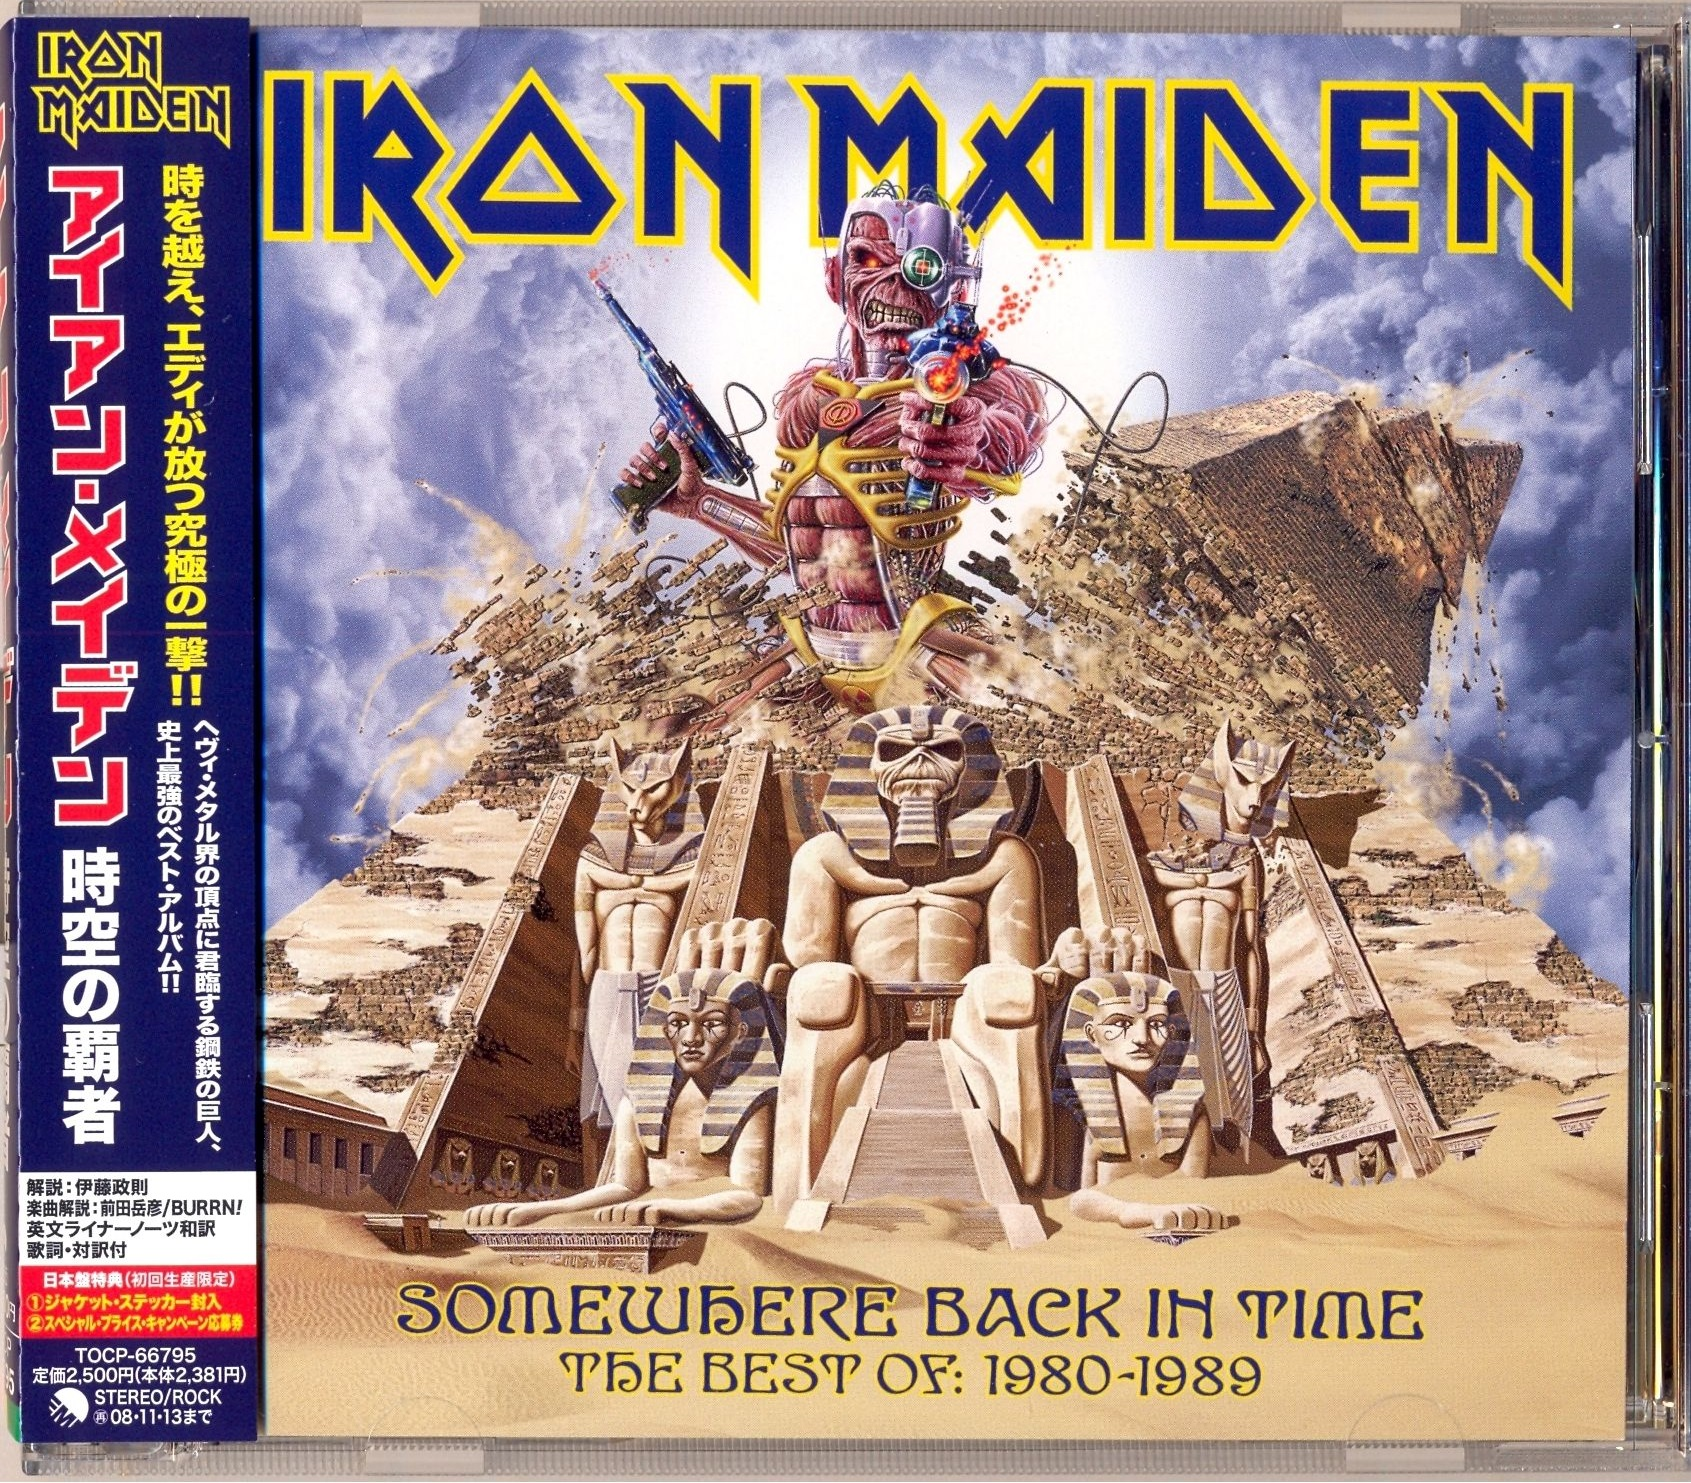 Iron Maiden-Somewhere Back In Time: The Best Of: 1980-1989 (2008 Japanese Edition)